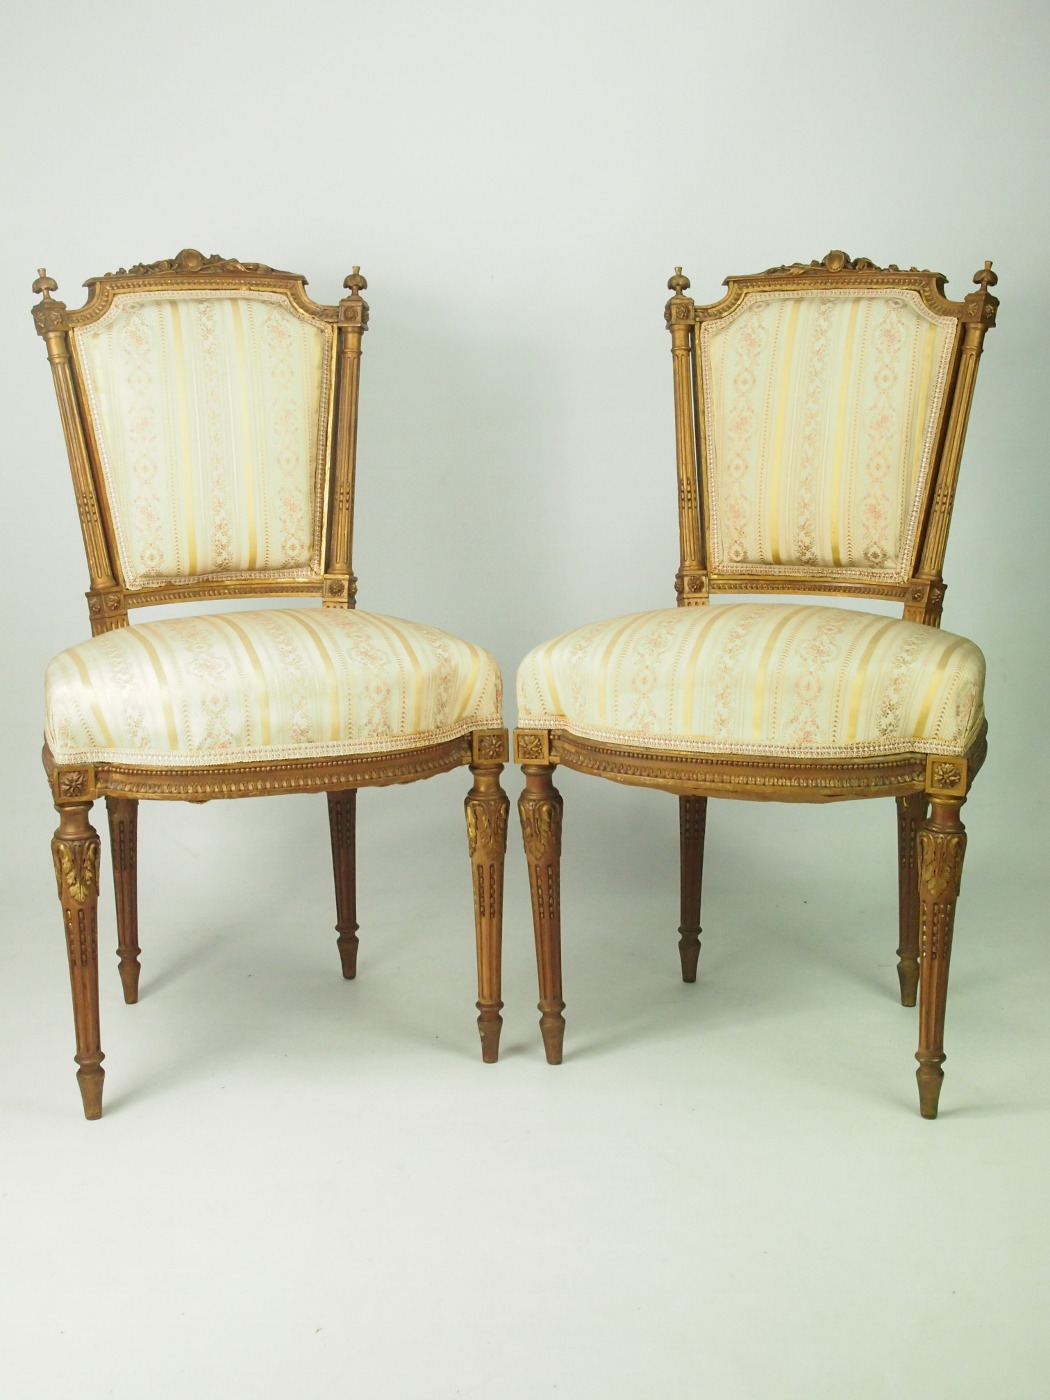 pair of antique giltwood french side chairs in louis xvi style c1870